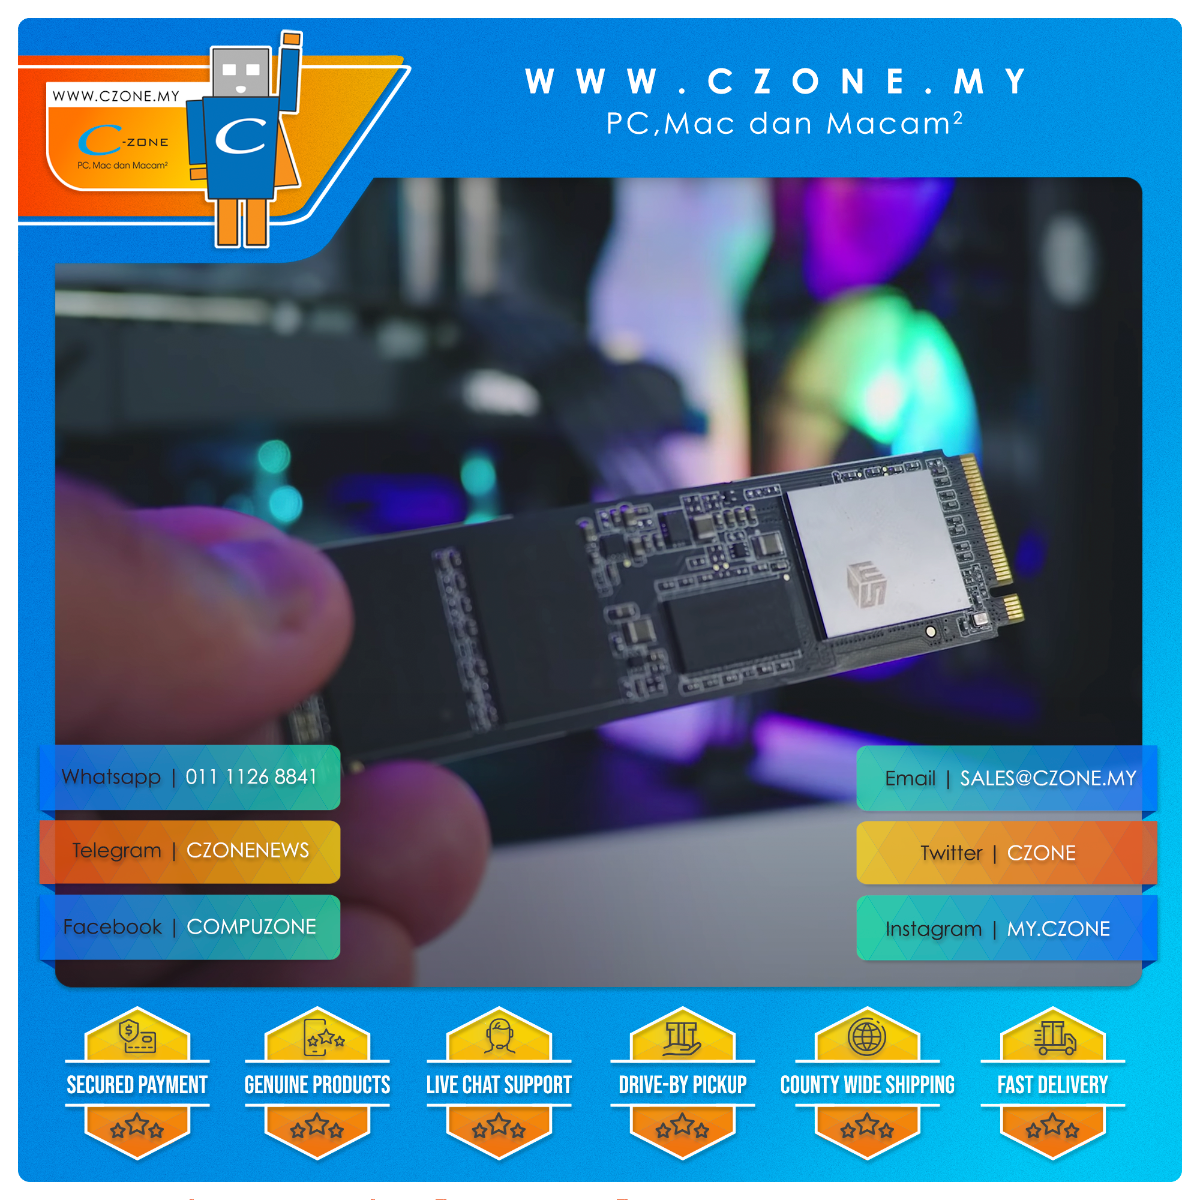 https://czone.my/czone/computer-components/storage-devices/ssd-solid-state-drives.html